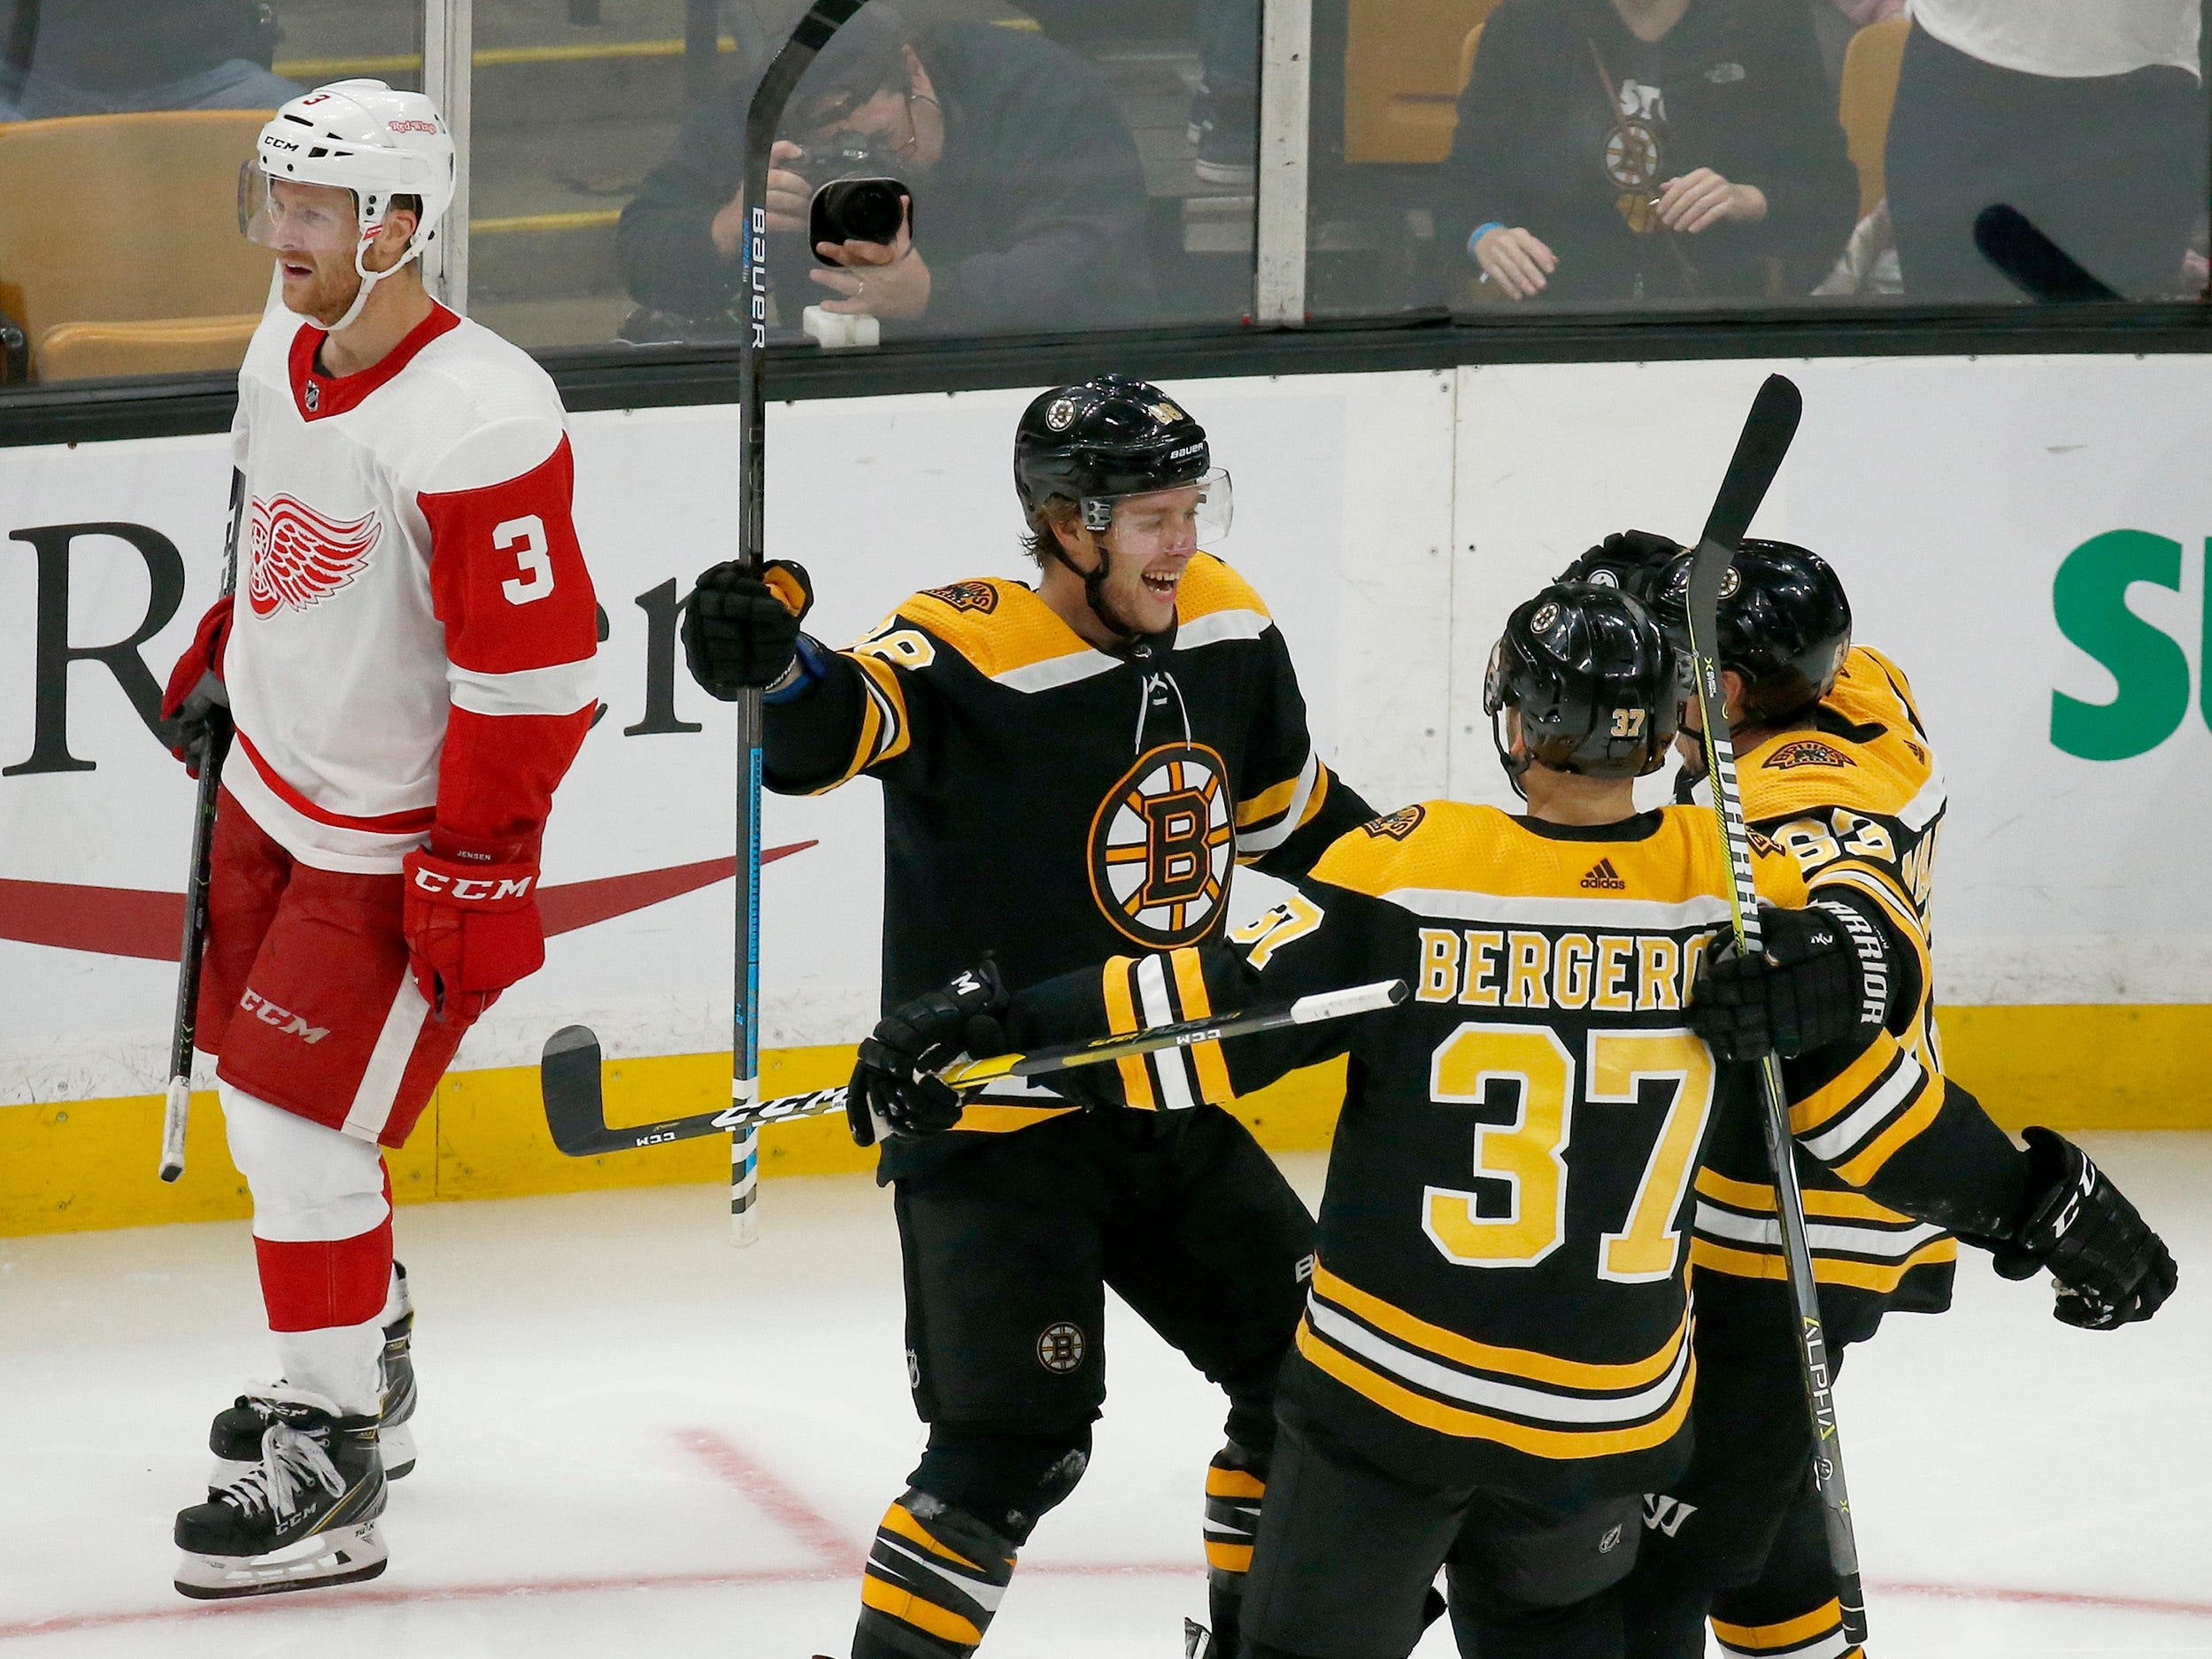 Boston Bruins right wing David Pastrnak celebrates his third goal of an NHL hockey game with teammates Patrice Bergeron (37) and Brad Marchand as Detroit Red Wings defenseman Nick Jensen (3) skates by during the third period.